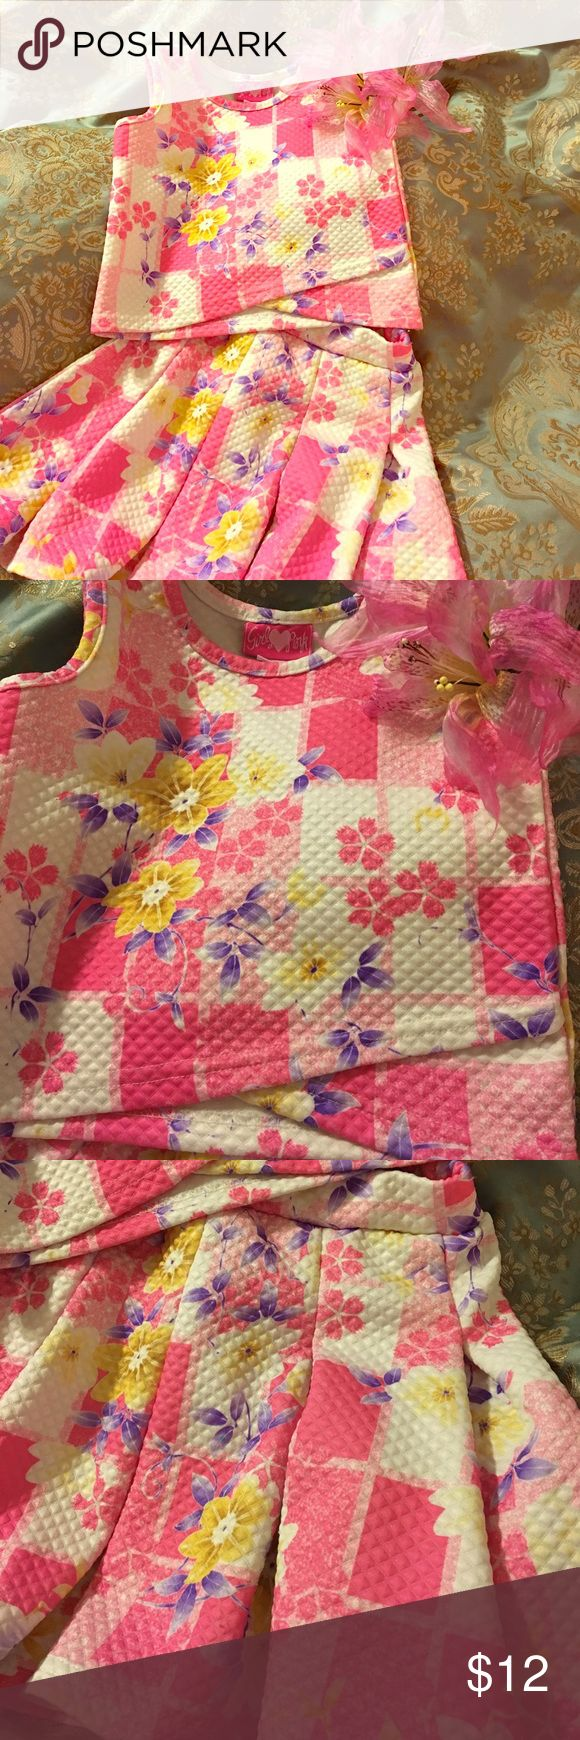 Girly Pink 2 Piece Skirt Set 4T Pink Floral NWOT Just right for the little lady that is all-girl! This pretty bright pink floral skirt set is soft and comfortable in polyester waffle knit. Machine wash cold🌼😍🌼 Girly Pink Matching Sets